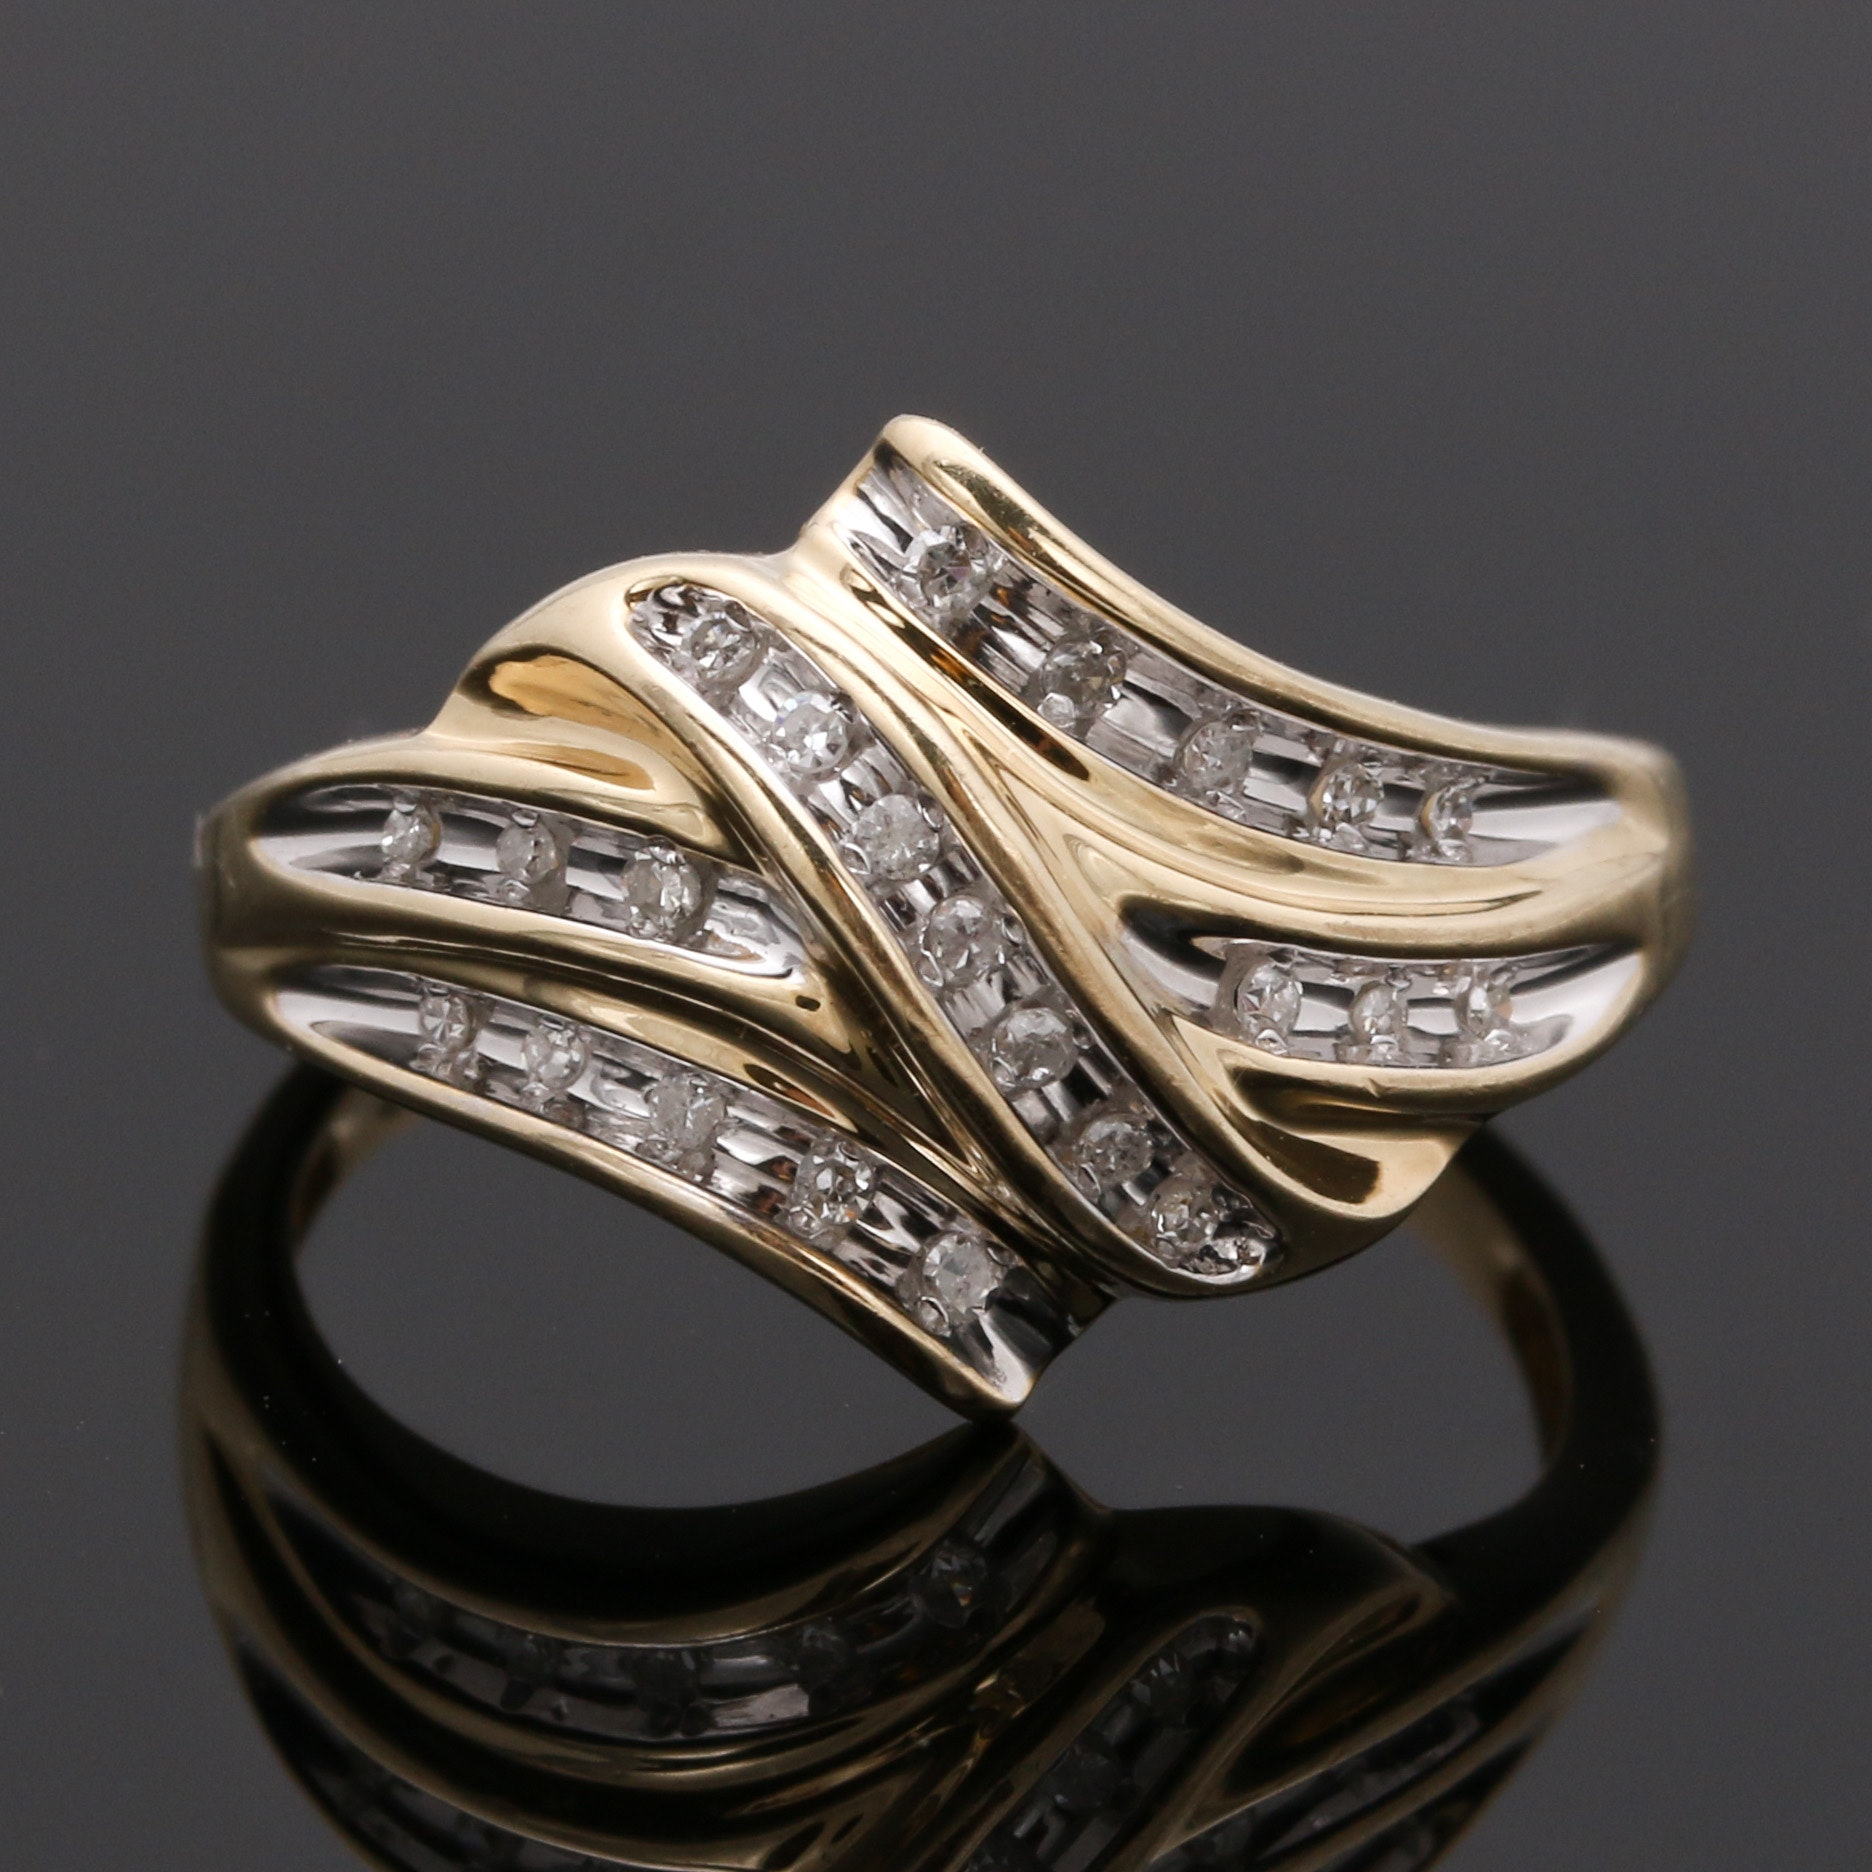 10K Yellow Gold Diamond Swirl Ring